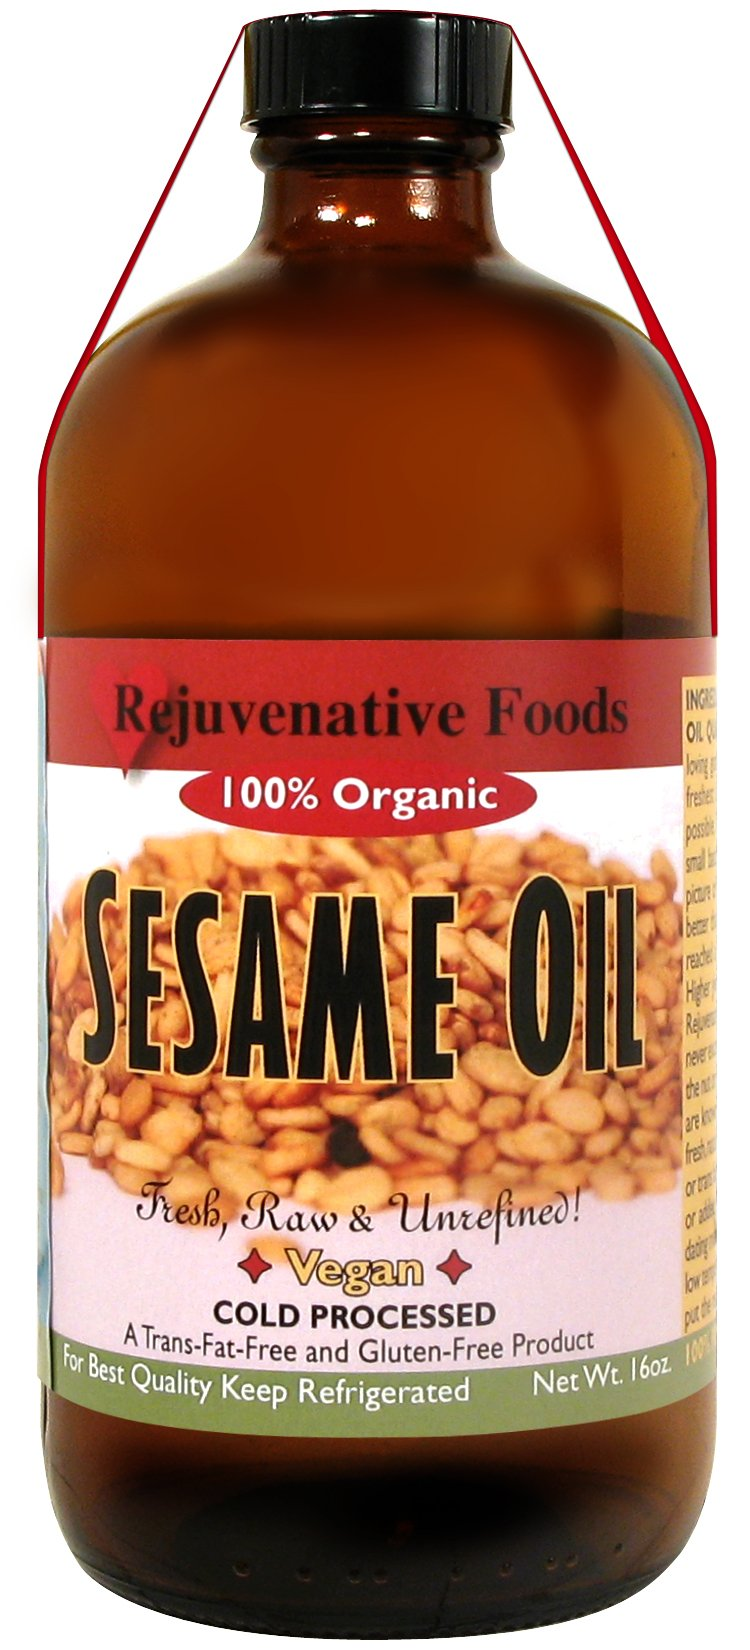 FIVE 16 oz. Extra-Virgin Fresh Raw Organic Sesame Oil Pure Rejuvenative Foods All-Low-Temp-Processed-Pressed-To-Order In-Amber-Glass-Ayurvedic Culinary-Unrefined USDA-Certified Organic (5 - 16 oz.) by Rejuvenative Foods